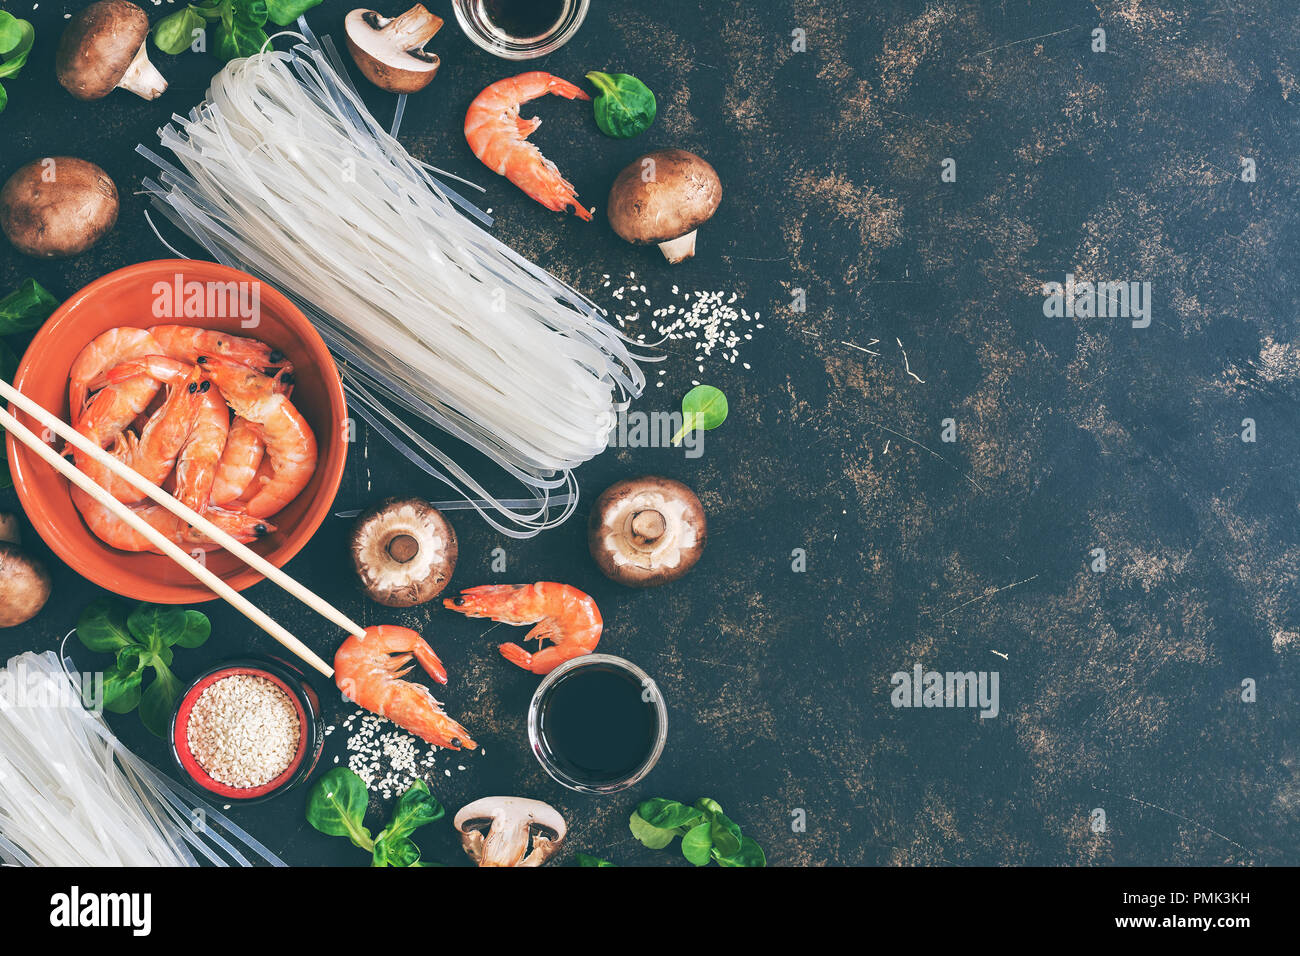 Background with Asian ingredients - rice noodles, shrimps, mushrooms, sesame, salad corn, dark background. Flat lay,copy space. toned photo - Stock Image